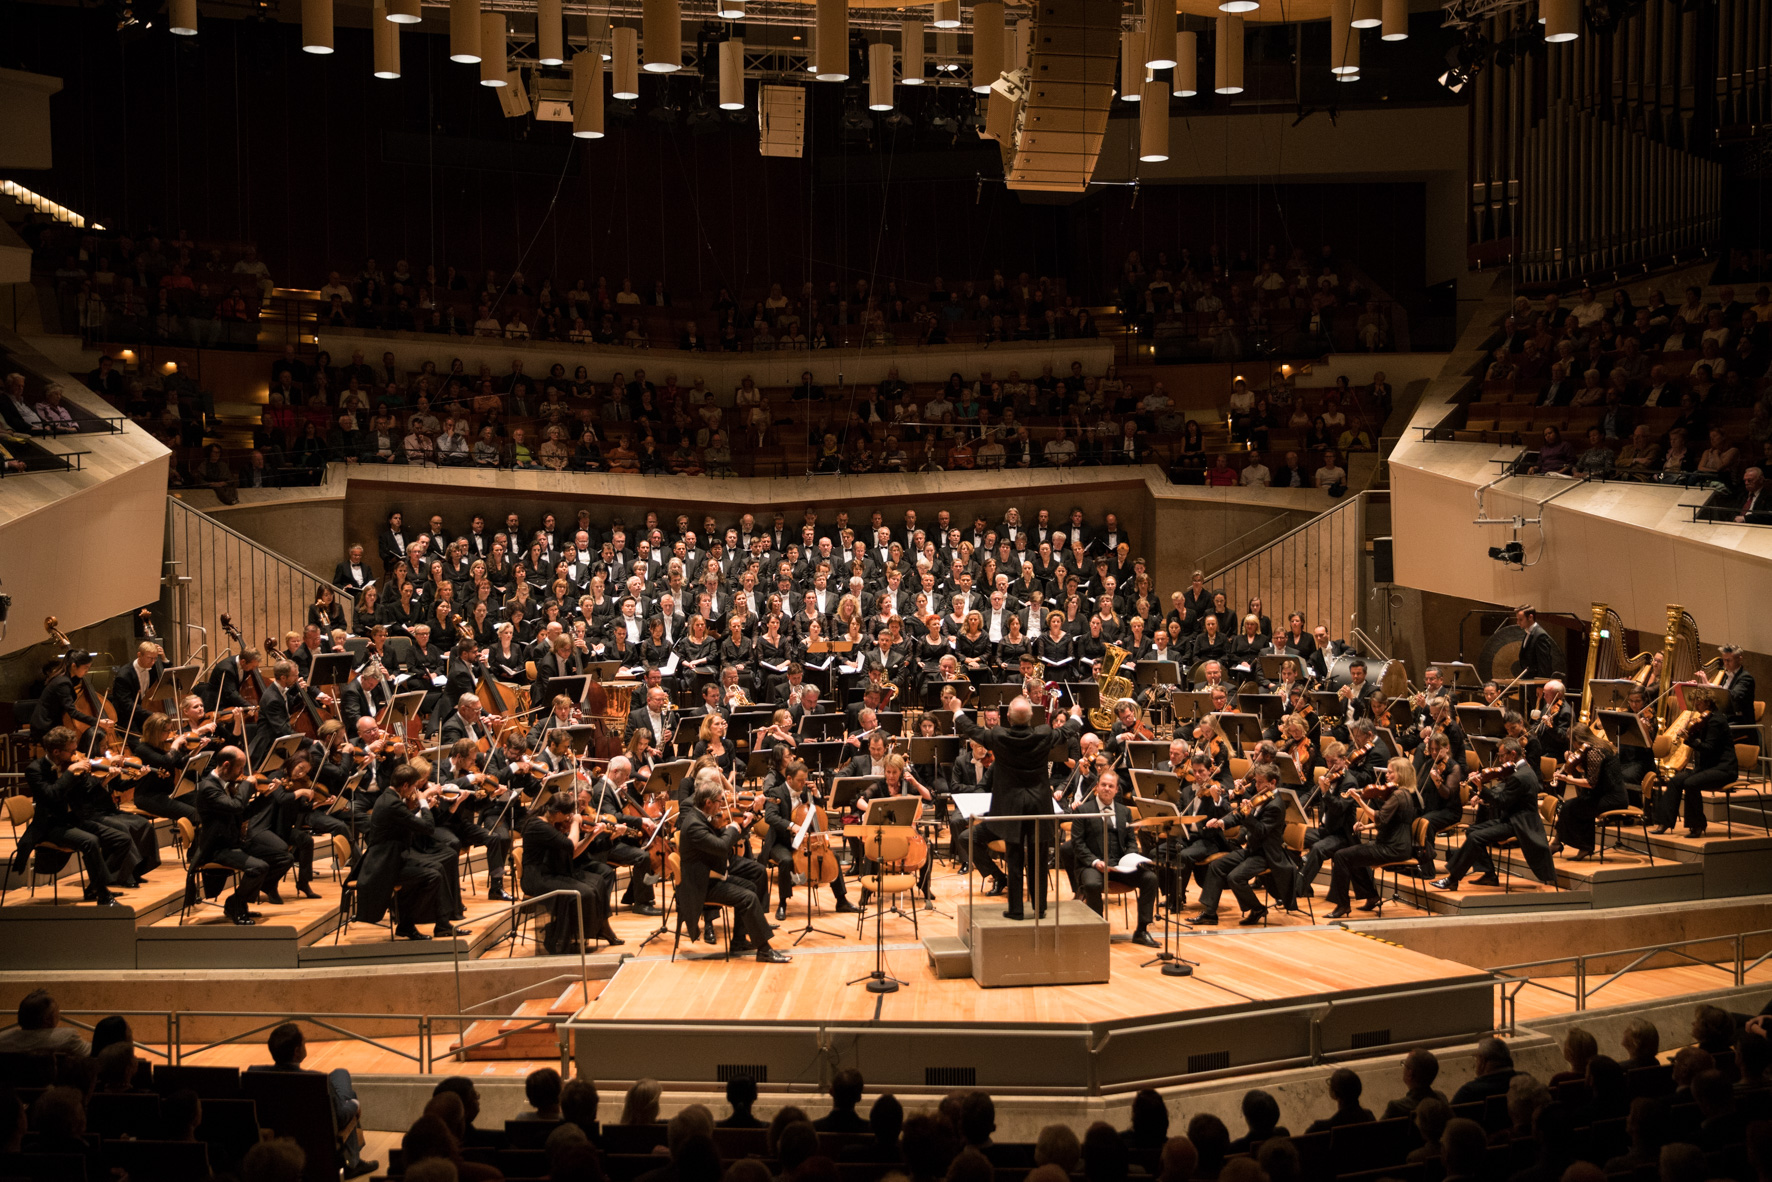 Staatskapelle Berlin / Konzert Dream of Gerontius / Foto @ Holger Kettner